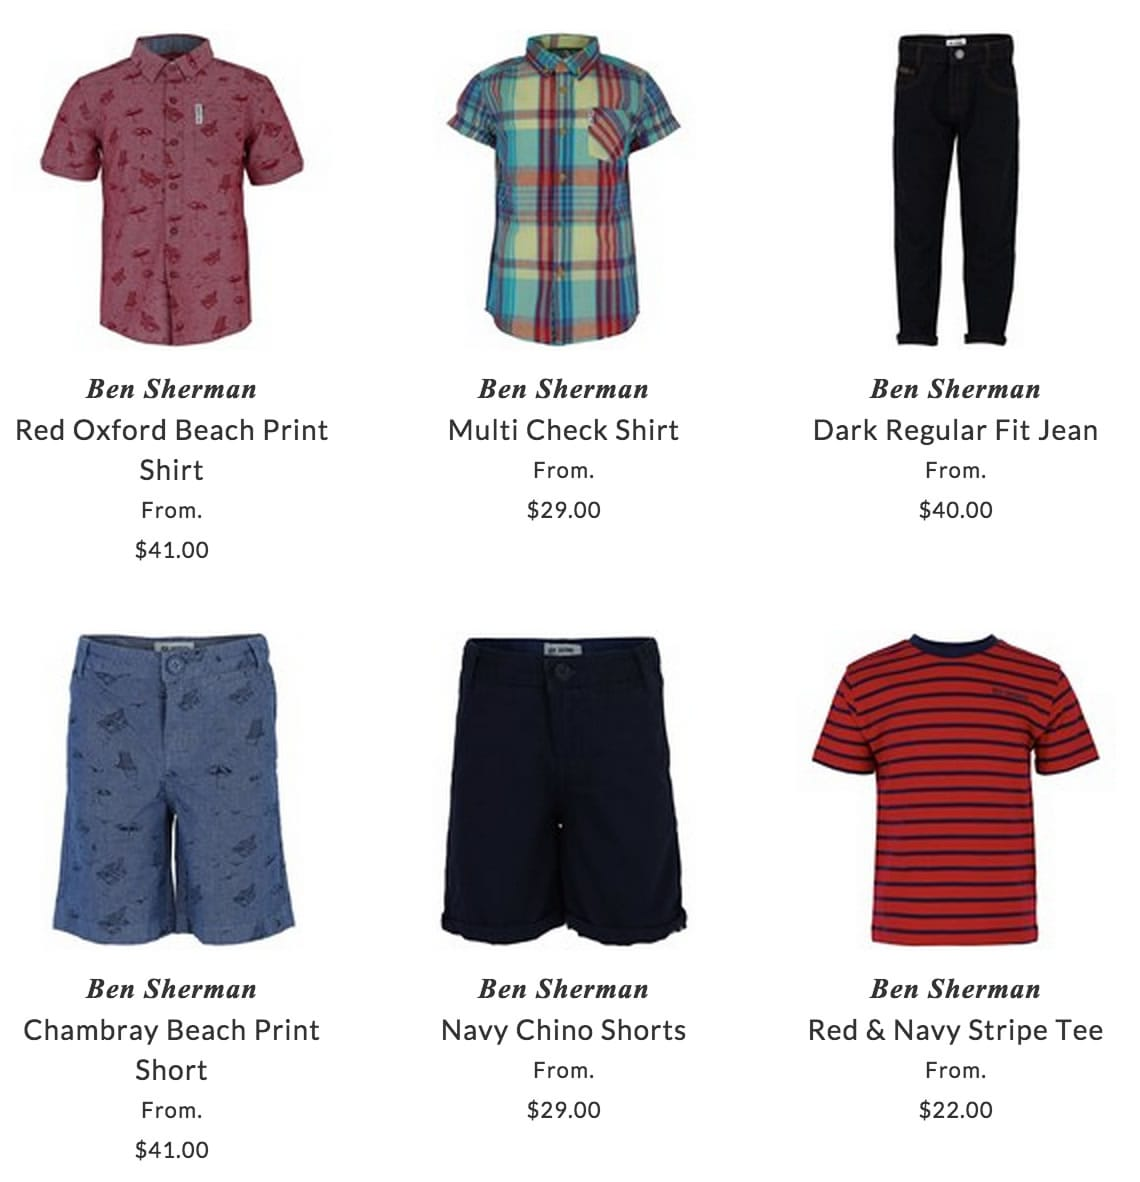 Ben Sherman boys clothing